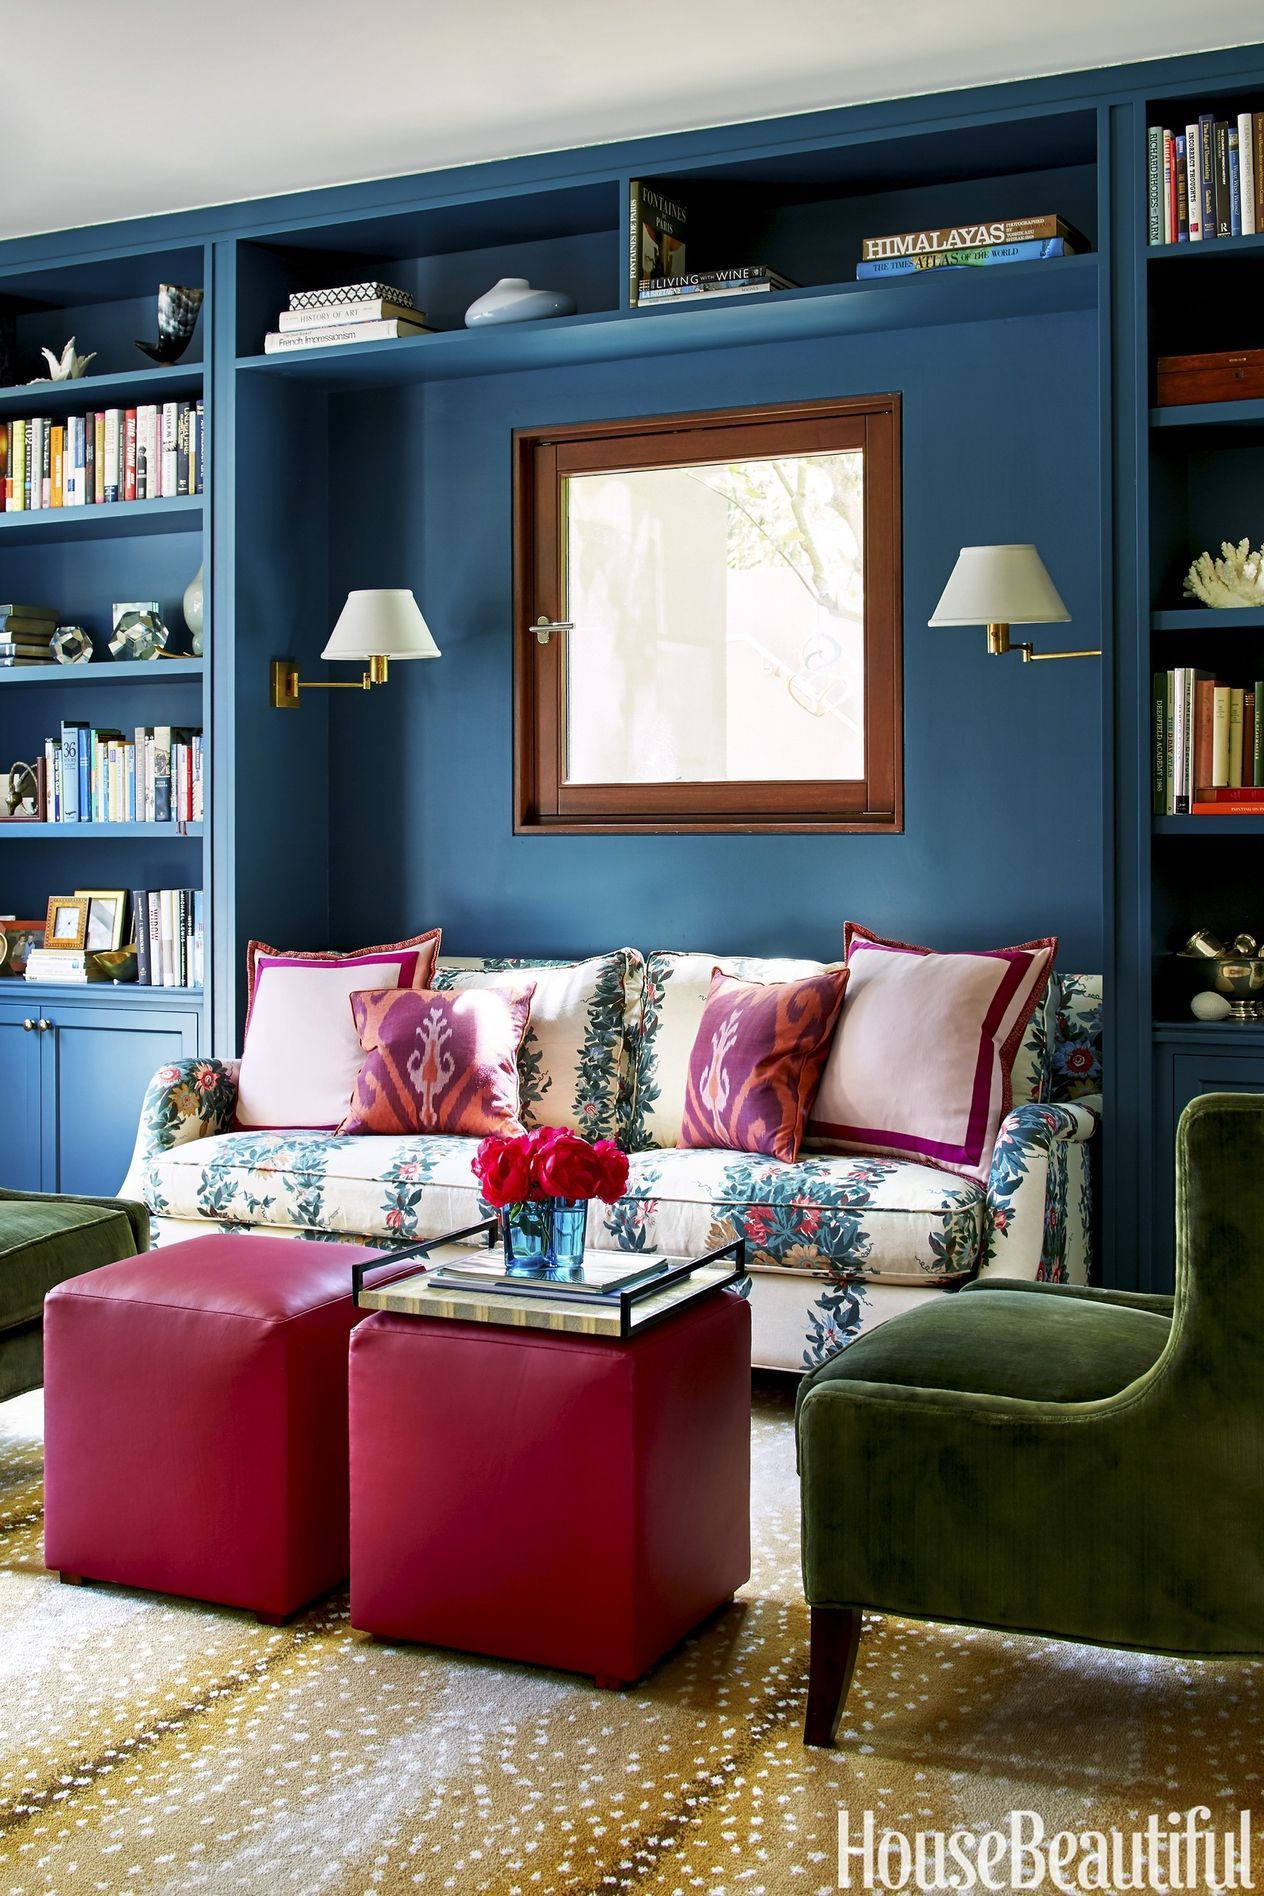 Small Living Room Styling Ideas & 15 Best Small Living Room Ideas - How to Design a Small Living Room